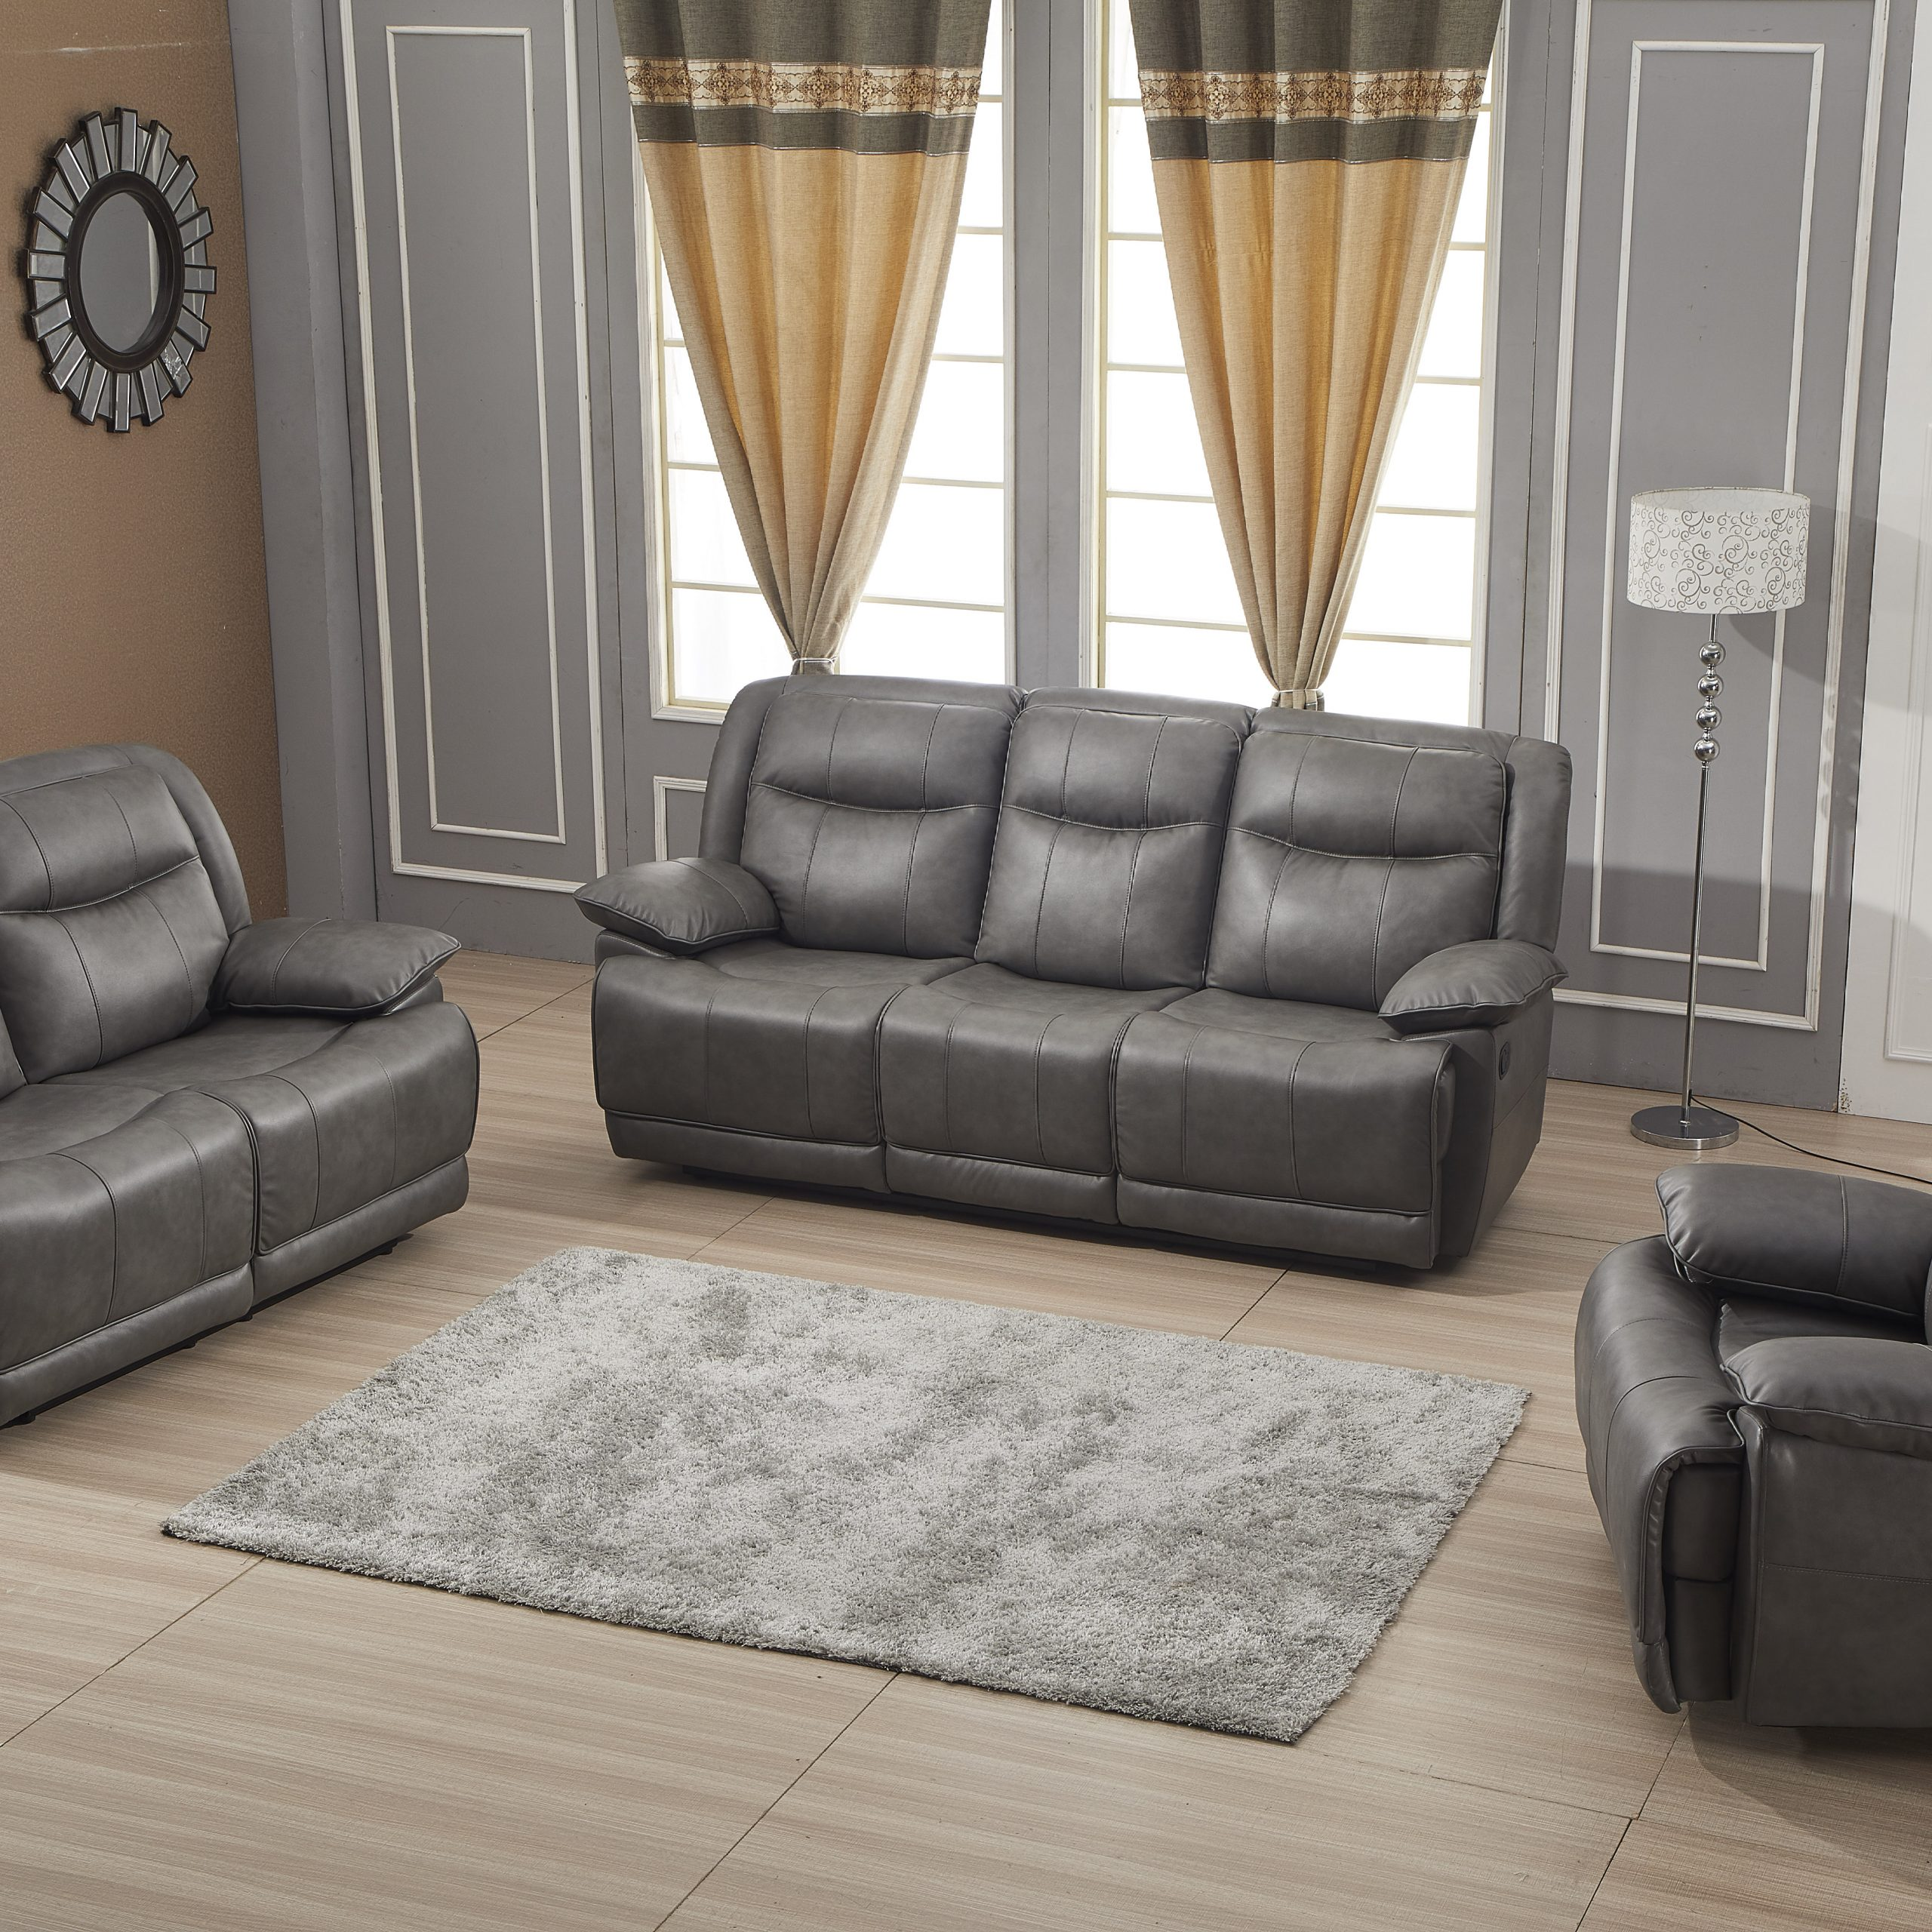 Famous Betsy Furniture Bonded Leather Reclining Sofa Couch Set Inside Gray Reclining Sofas (View 2 of 17)